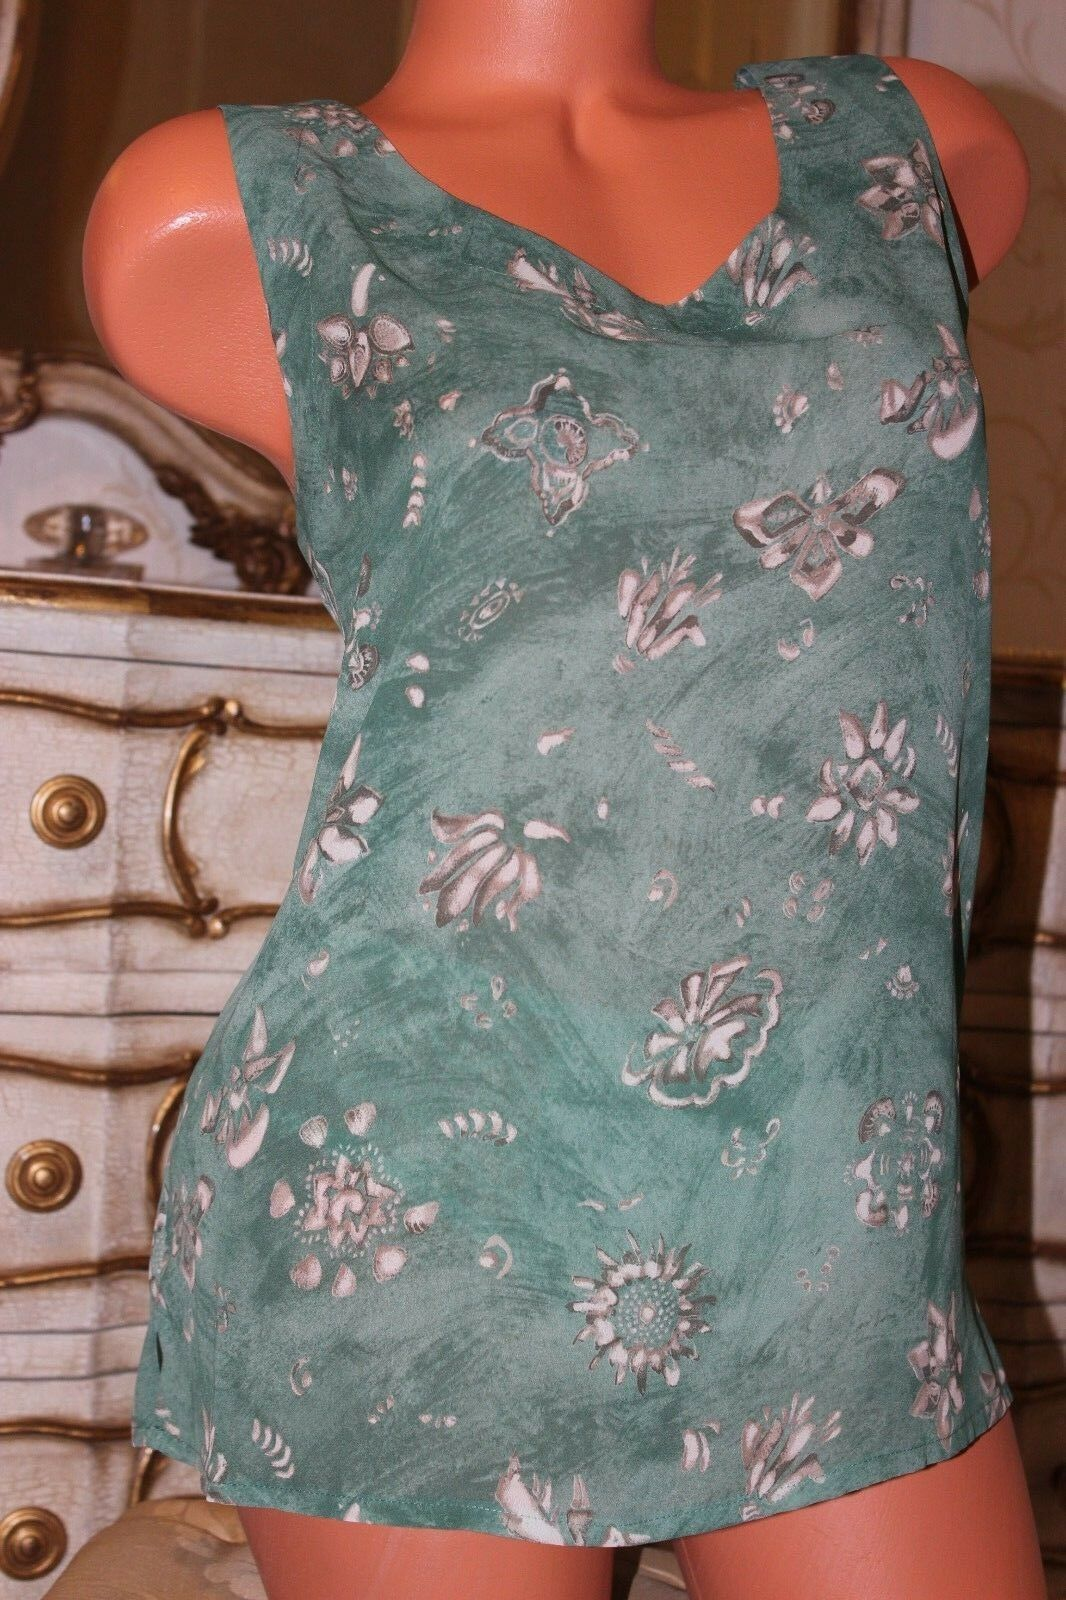 (Ref 16) JACQUES green Green Mix Floral Patterned Ladies top vest size 16